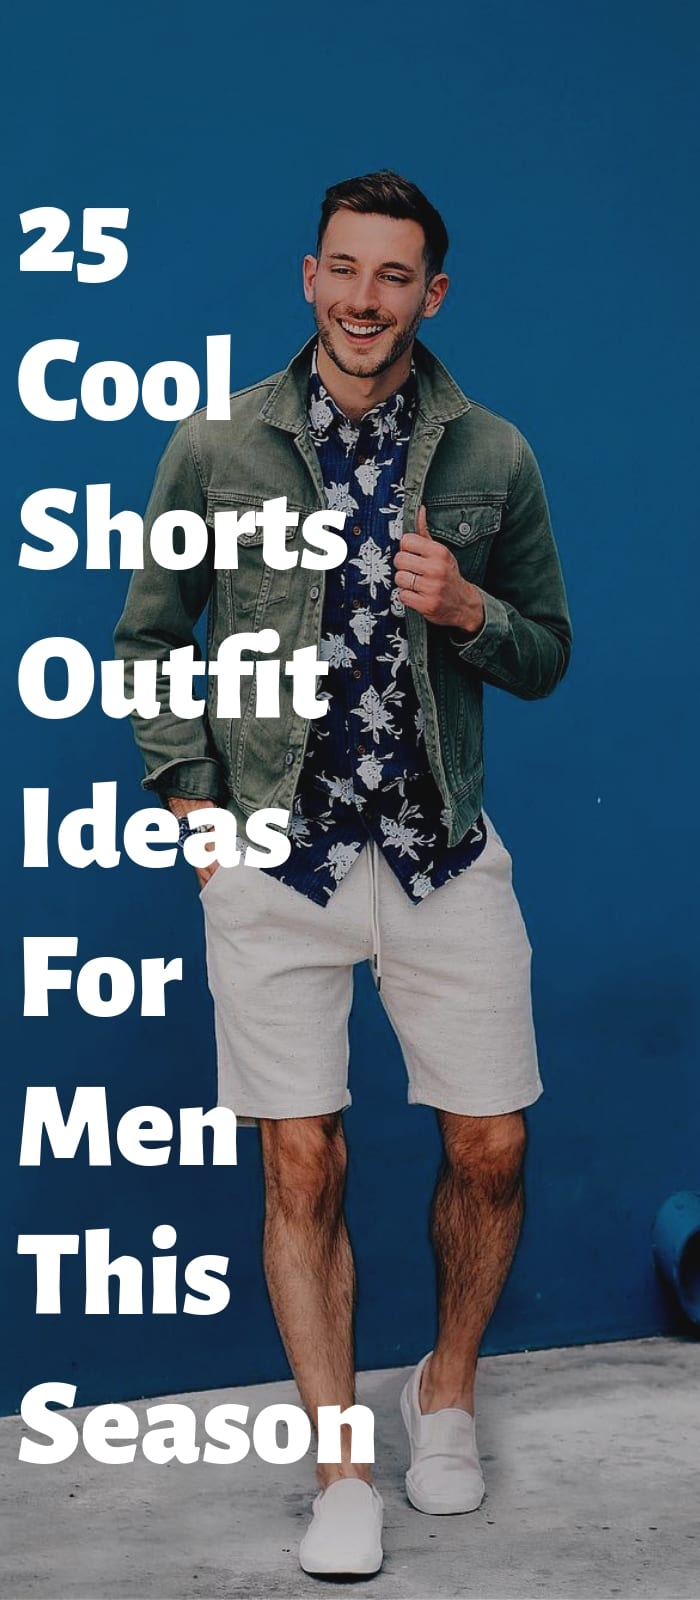 25 Cool Shorts Outfit Ideas For Men This Season